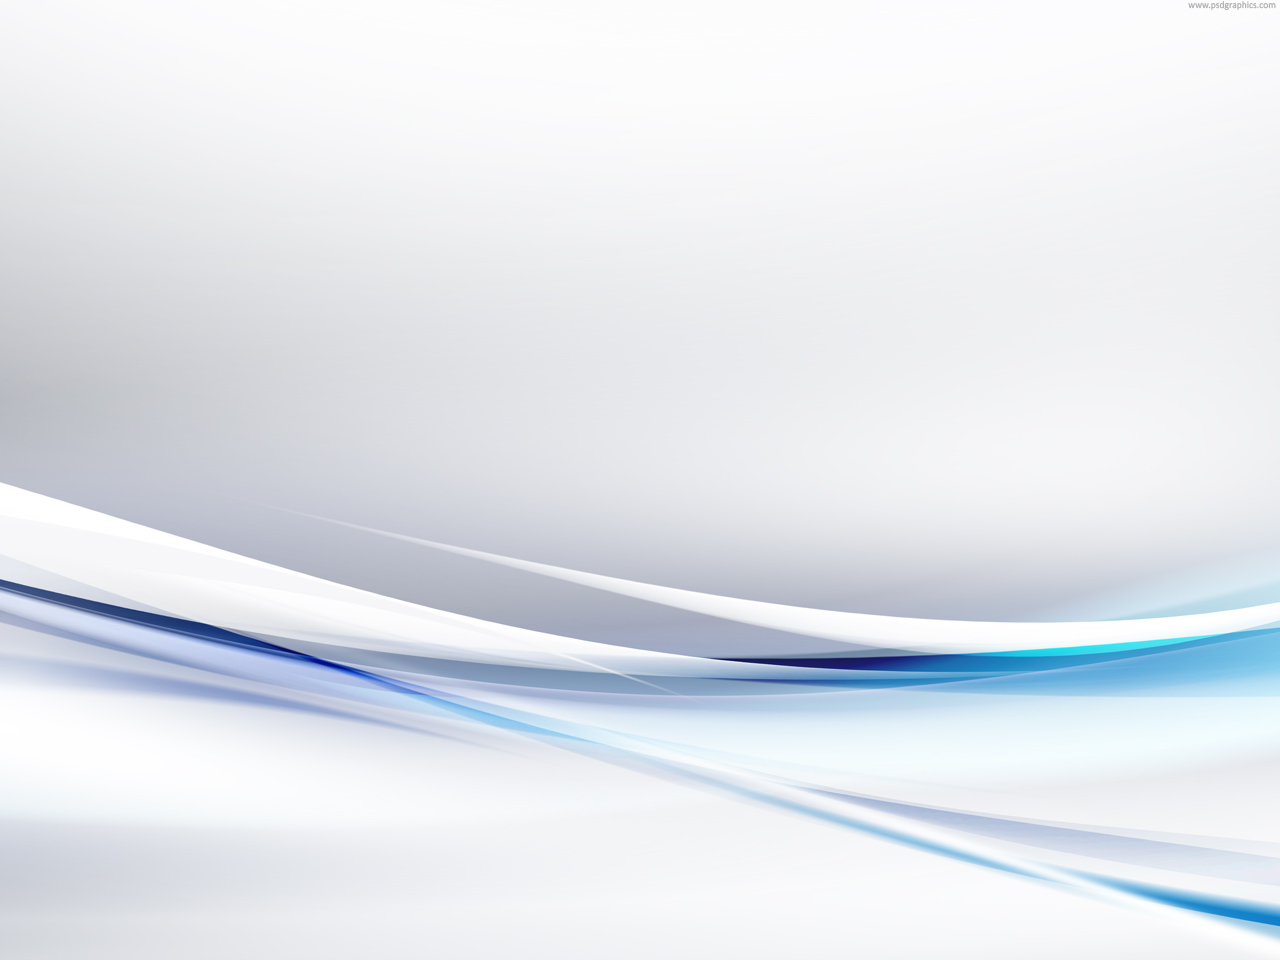 48 blue and white hd wallpaper on wallpapersafari - White abstract background hd ...